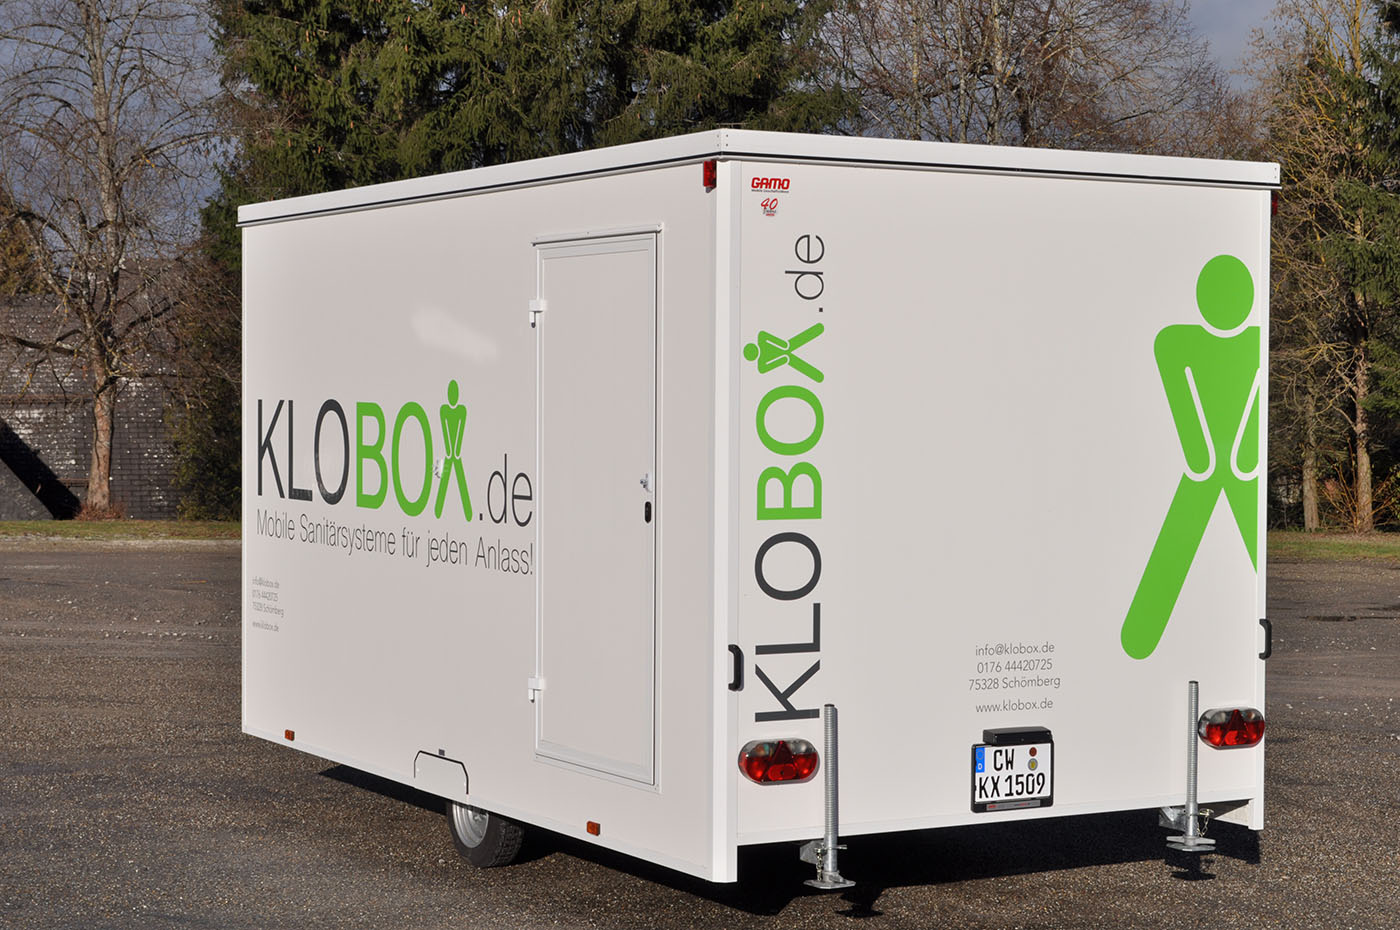 Toilettenwagen - klobox.de #06